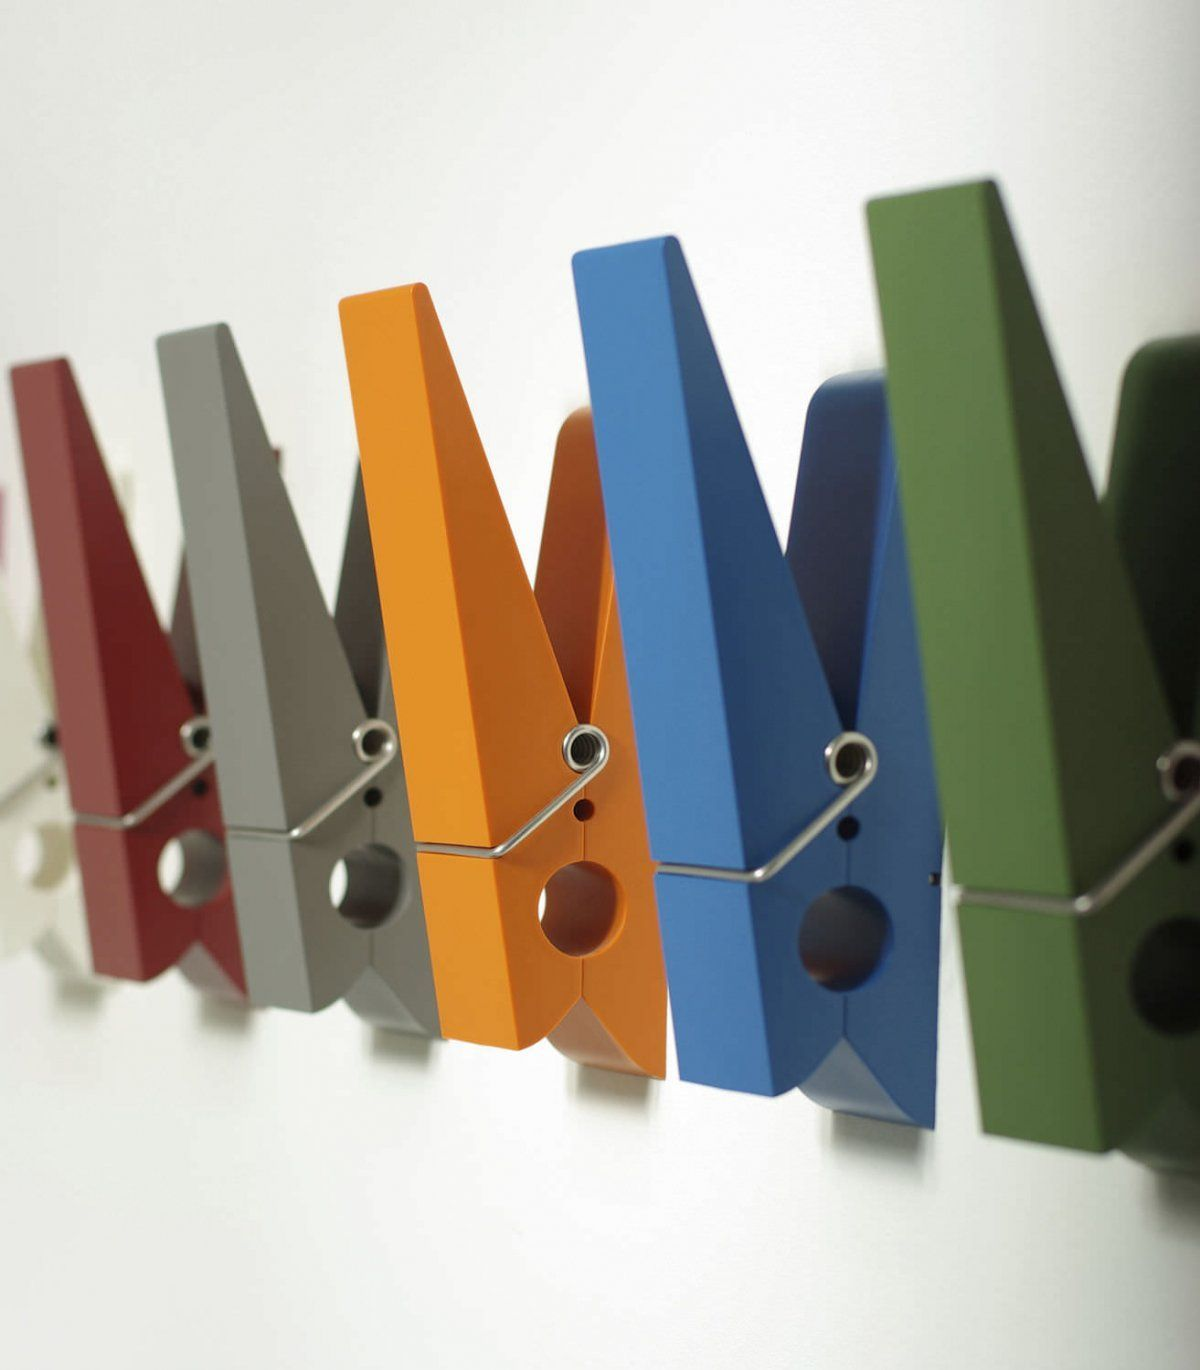 Unique Coat Hooks Wall Mounted Interior Design Coat Hooks Wall Mounted Decorative Wall Hooks Modern Coat Rack